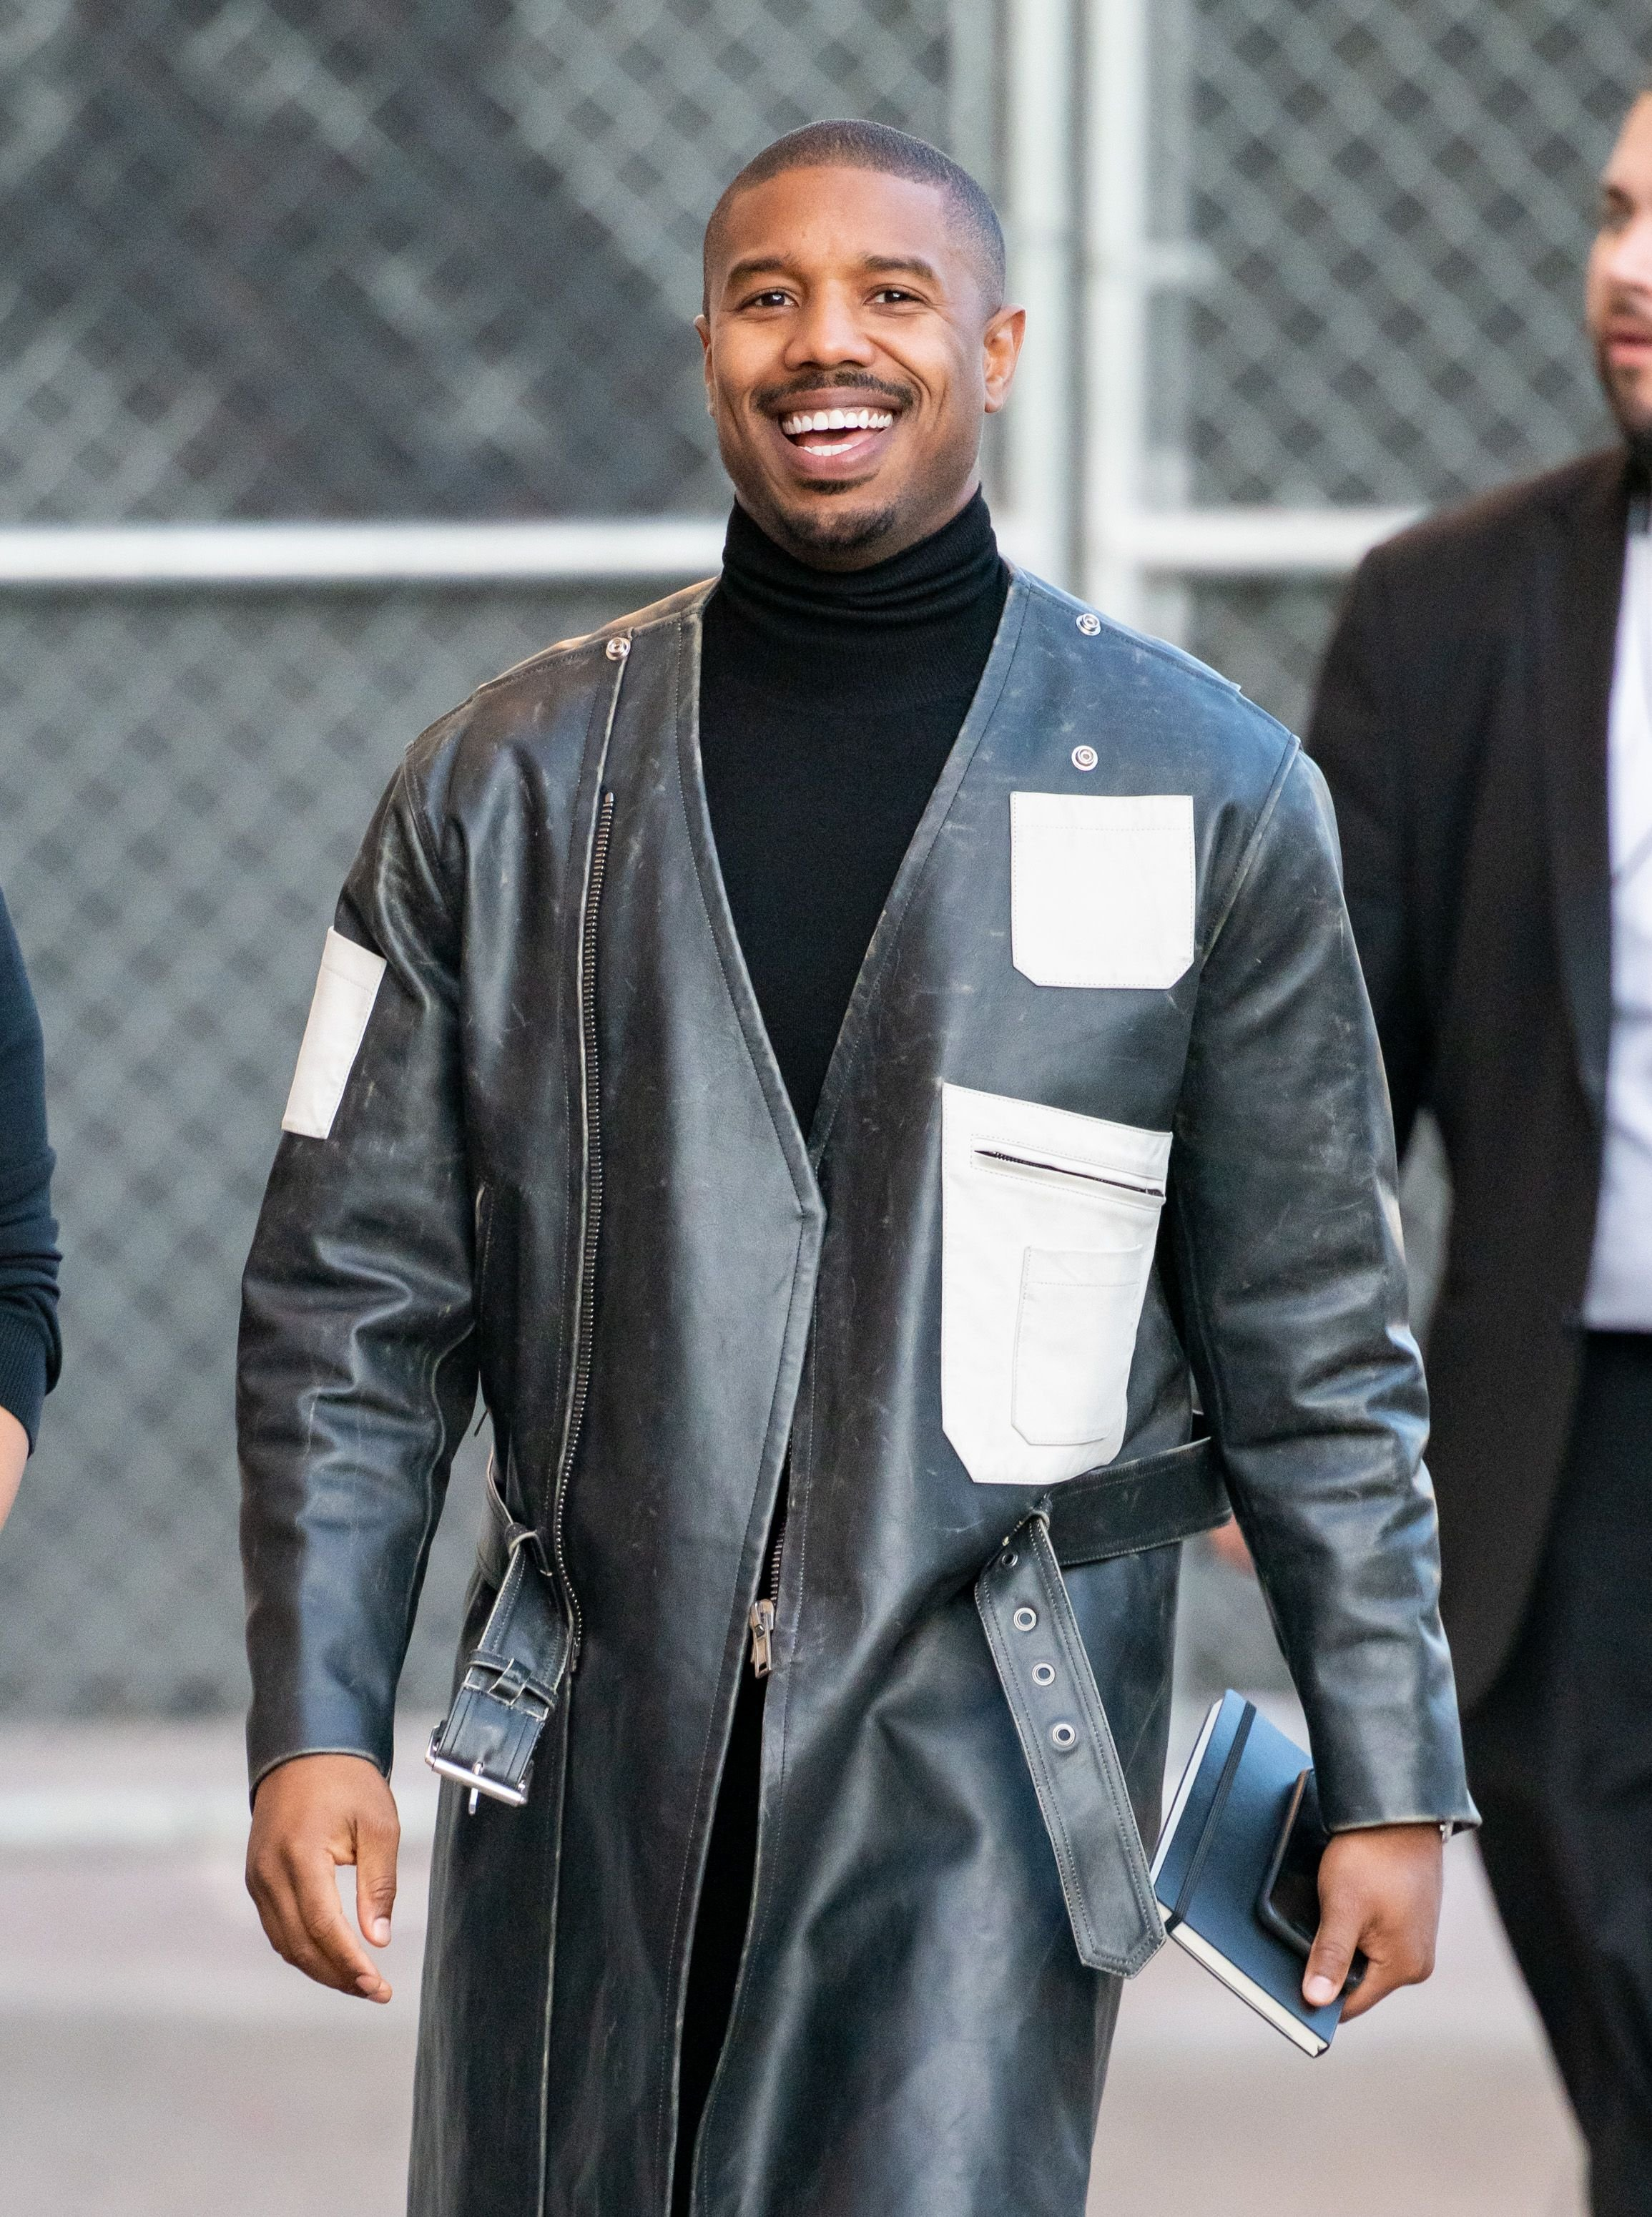 Actor Michael B. Jordan at 'Jimmy Kimmel Live' on January 09, 2020 in Los Angeles. | Photo: Getty Images